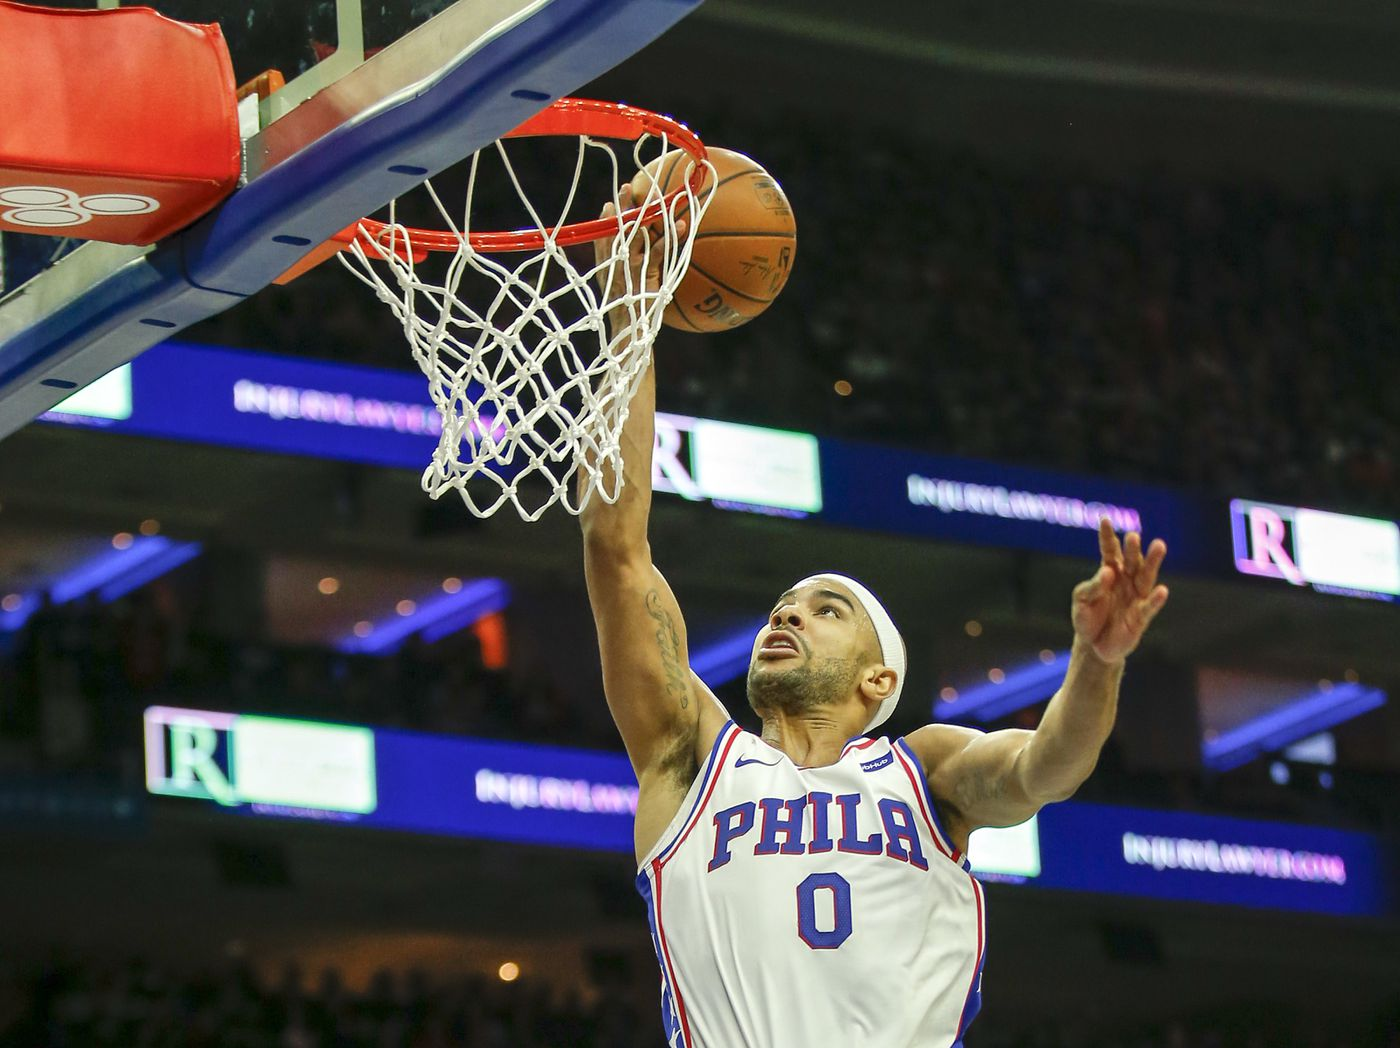 Sources: Sixers discuss moving Jerryd Bayless for Kyle Korver, agree to three-way deal for Mike Muscala